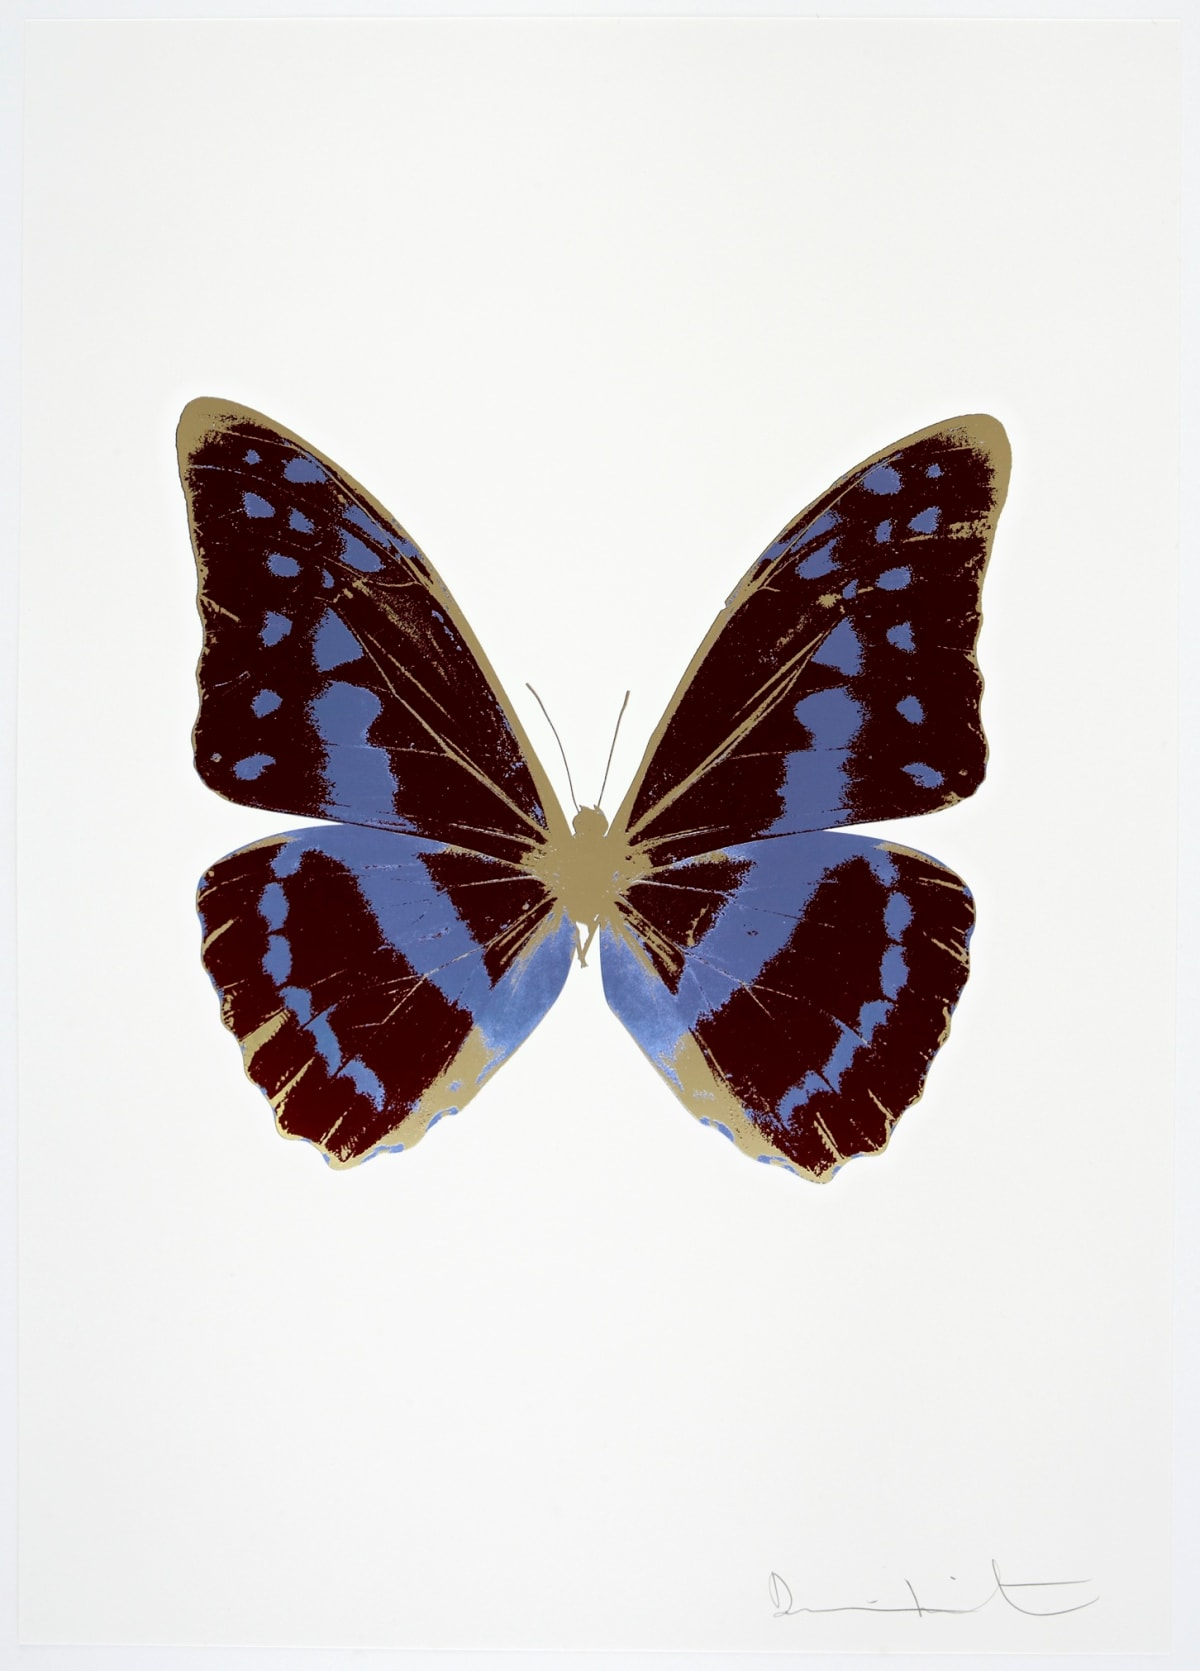 Damien Hirst The Souls III - Burgundy/Cornflower Blue/Cool Gold, 2010 3 colour foil block on 300gsm Arches 88 archival paper. Signed and numbered. Published by Paul Stolper and Other Criteria 72 x 51cm OC7950 / 660-53 Edition of 15